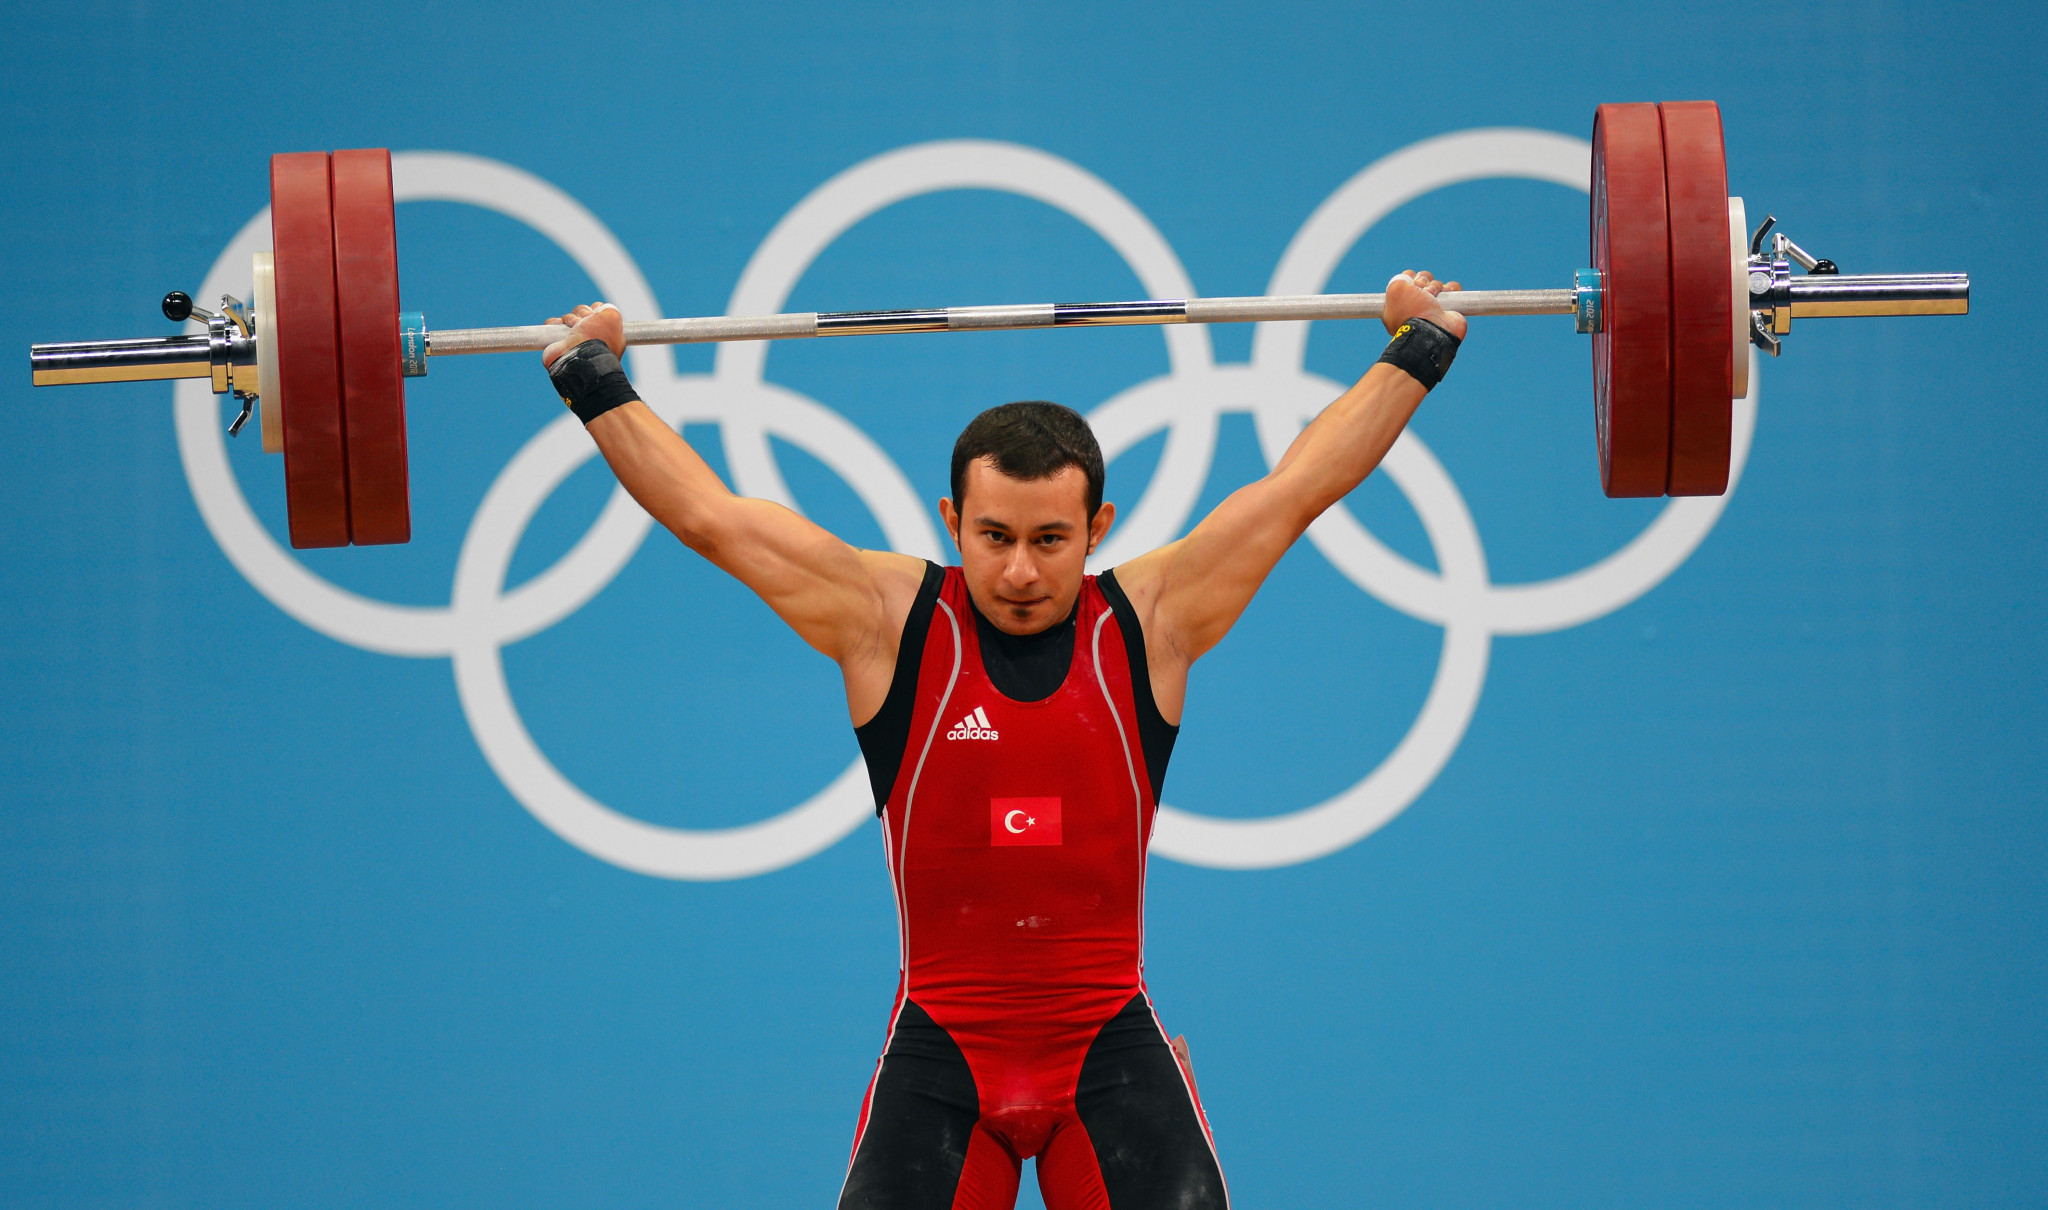 Turkish weightlifter Erol Bilgin had his eight-place finish at the London 2012 Olympic Games wiped after a reanalysis of his sample ©Getty Images